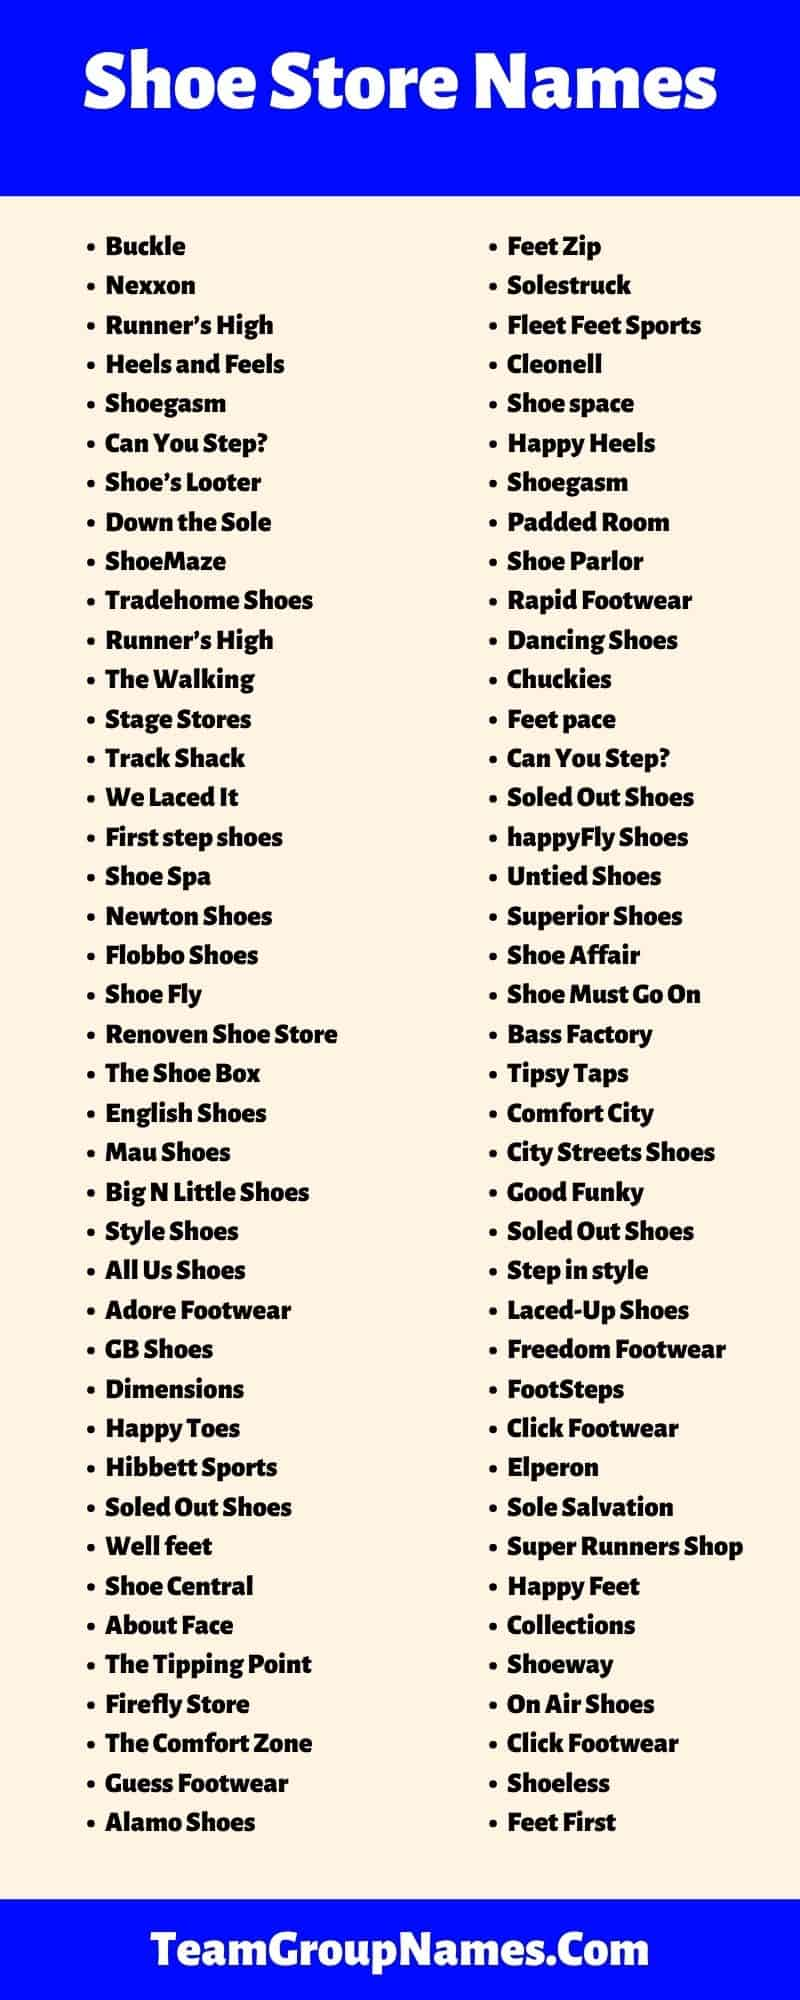 Shoe Store Names